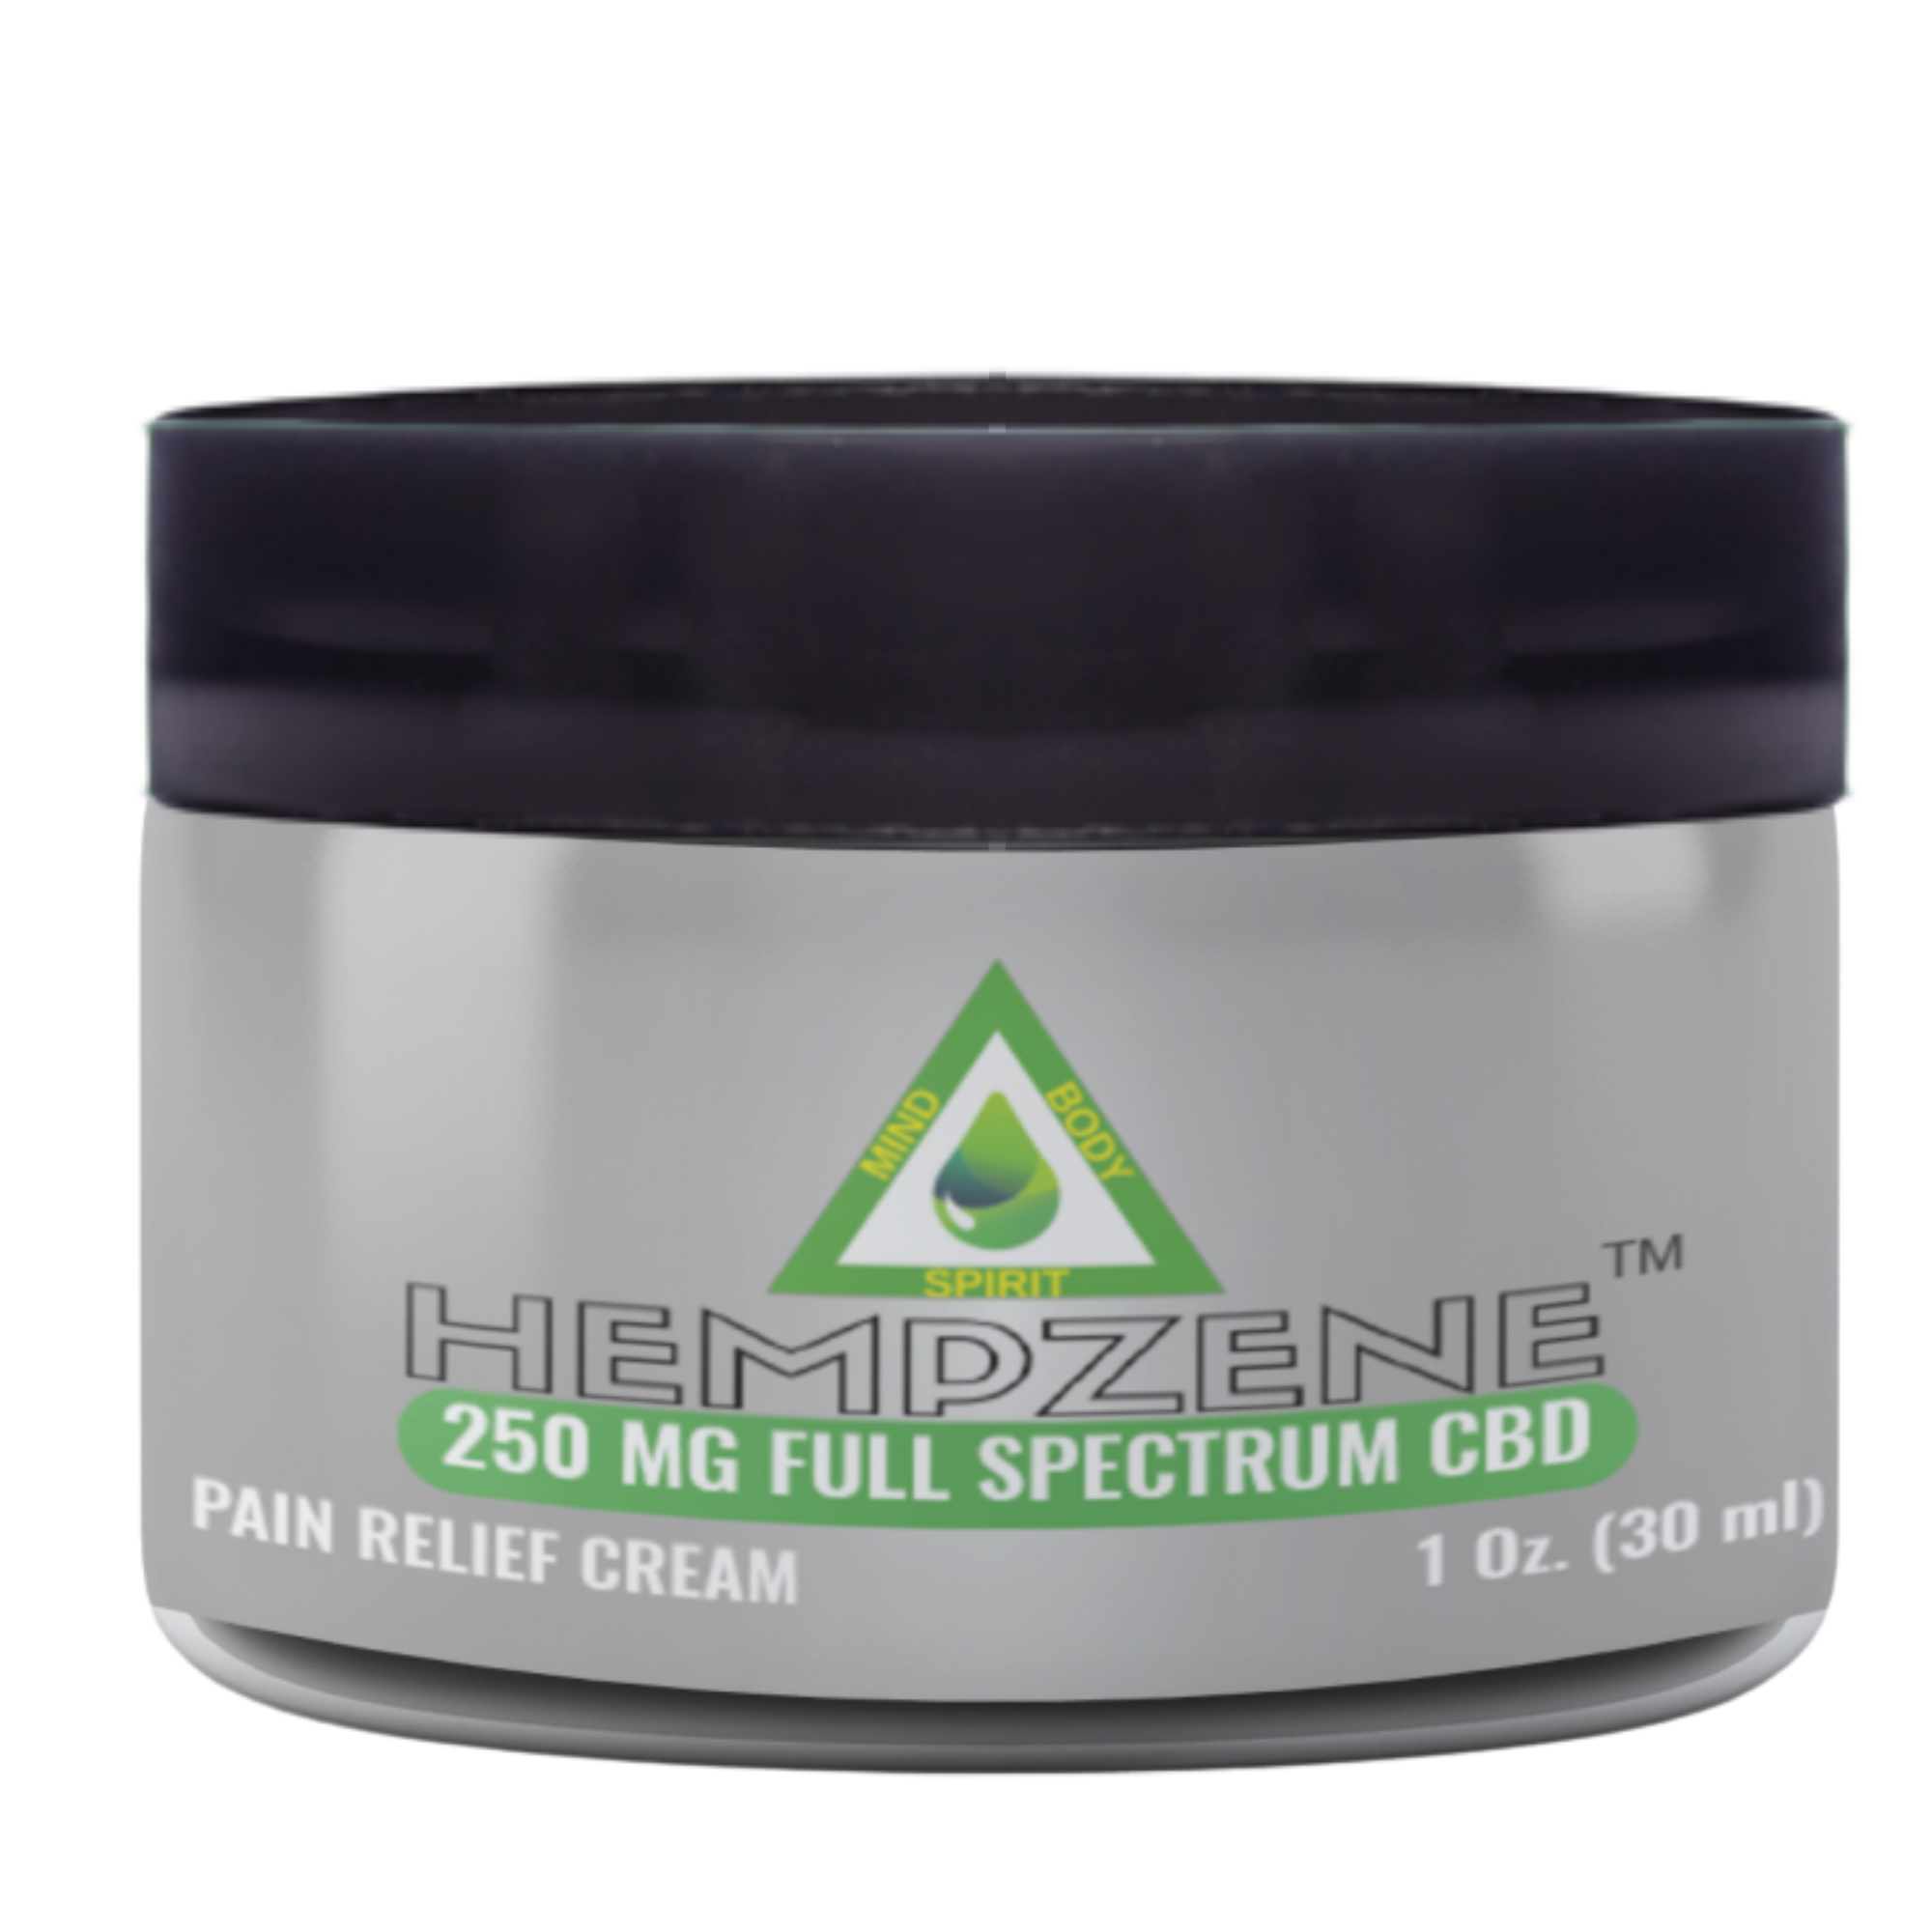 Hempzene CBD Relief Cream - 250 MG